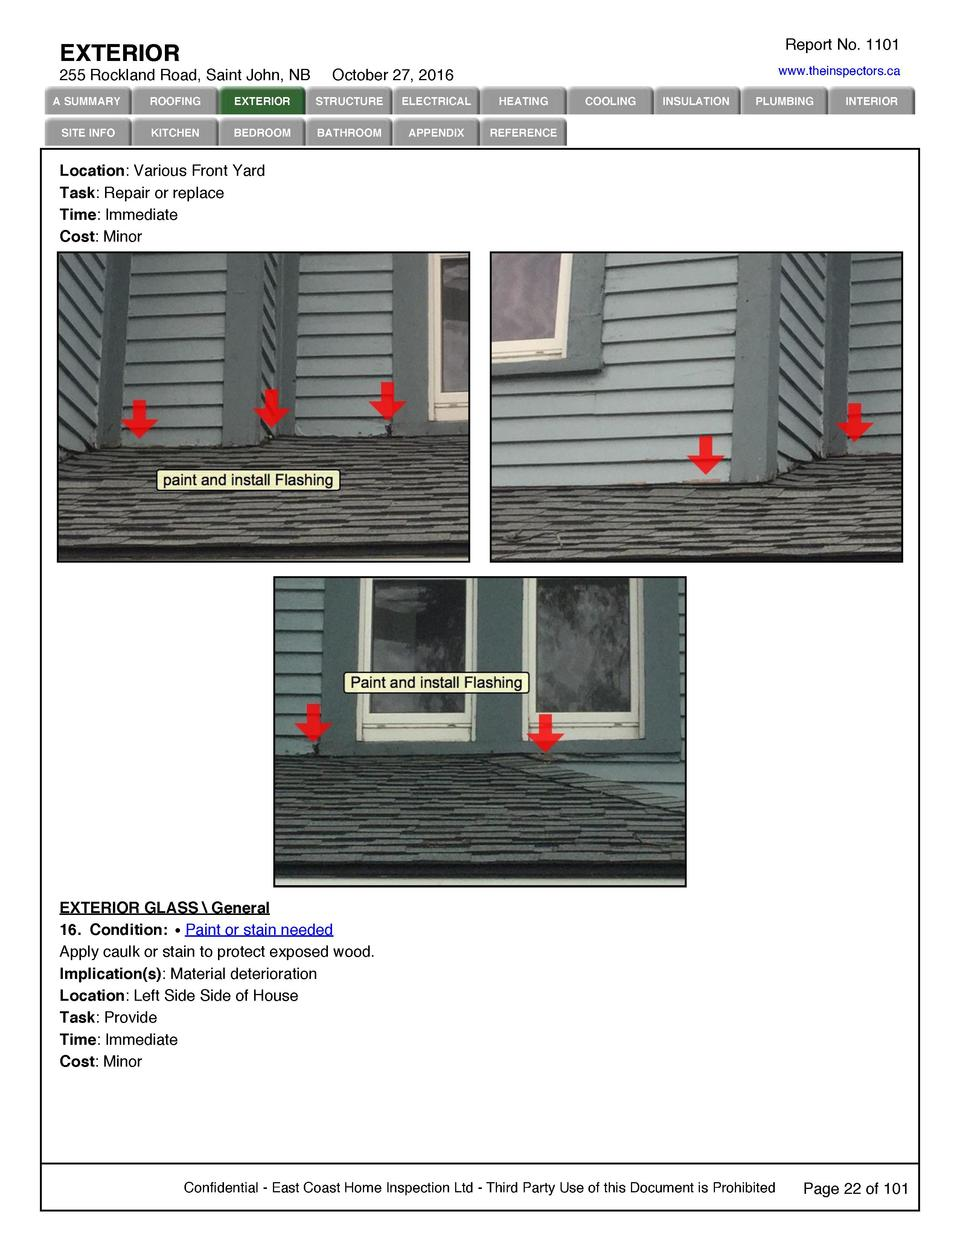 Report No. 1101  EXTERIOR 255 Rockland Road, Saint John, NB  www.theinspectors.ca  October 27, 2016  A SUMMARY  ROOFING  E...